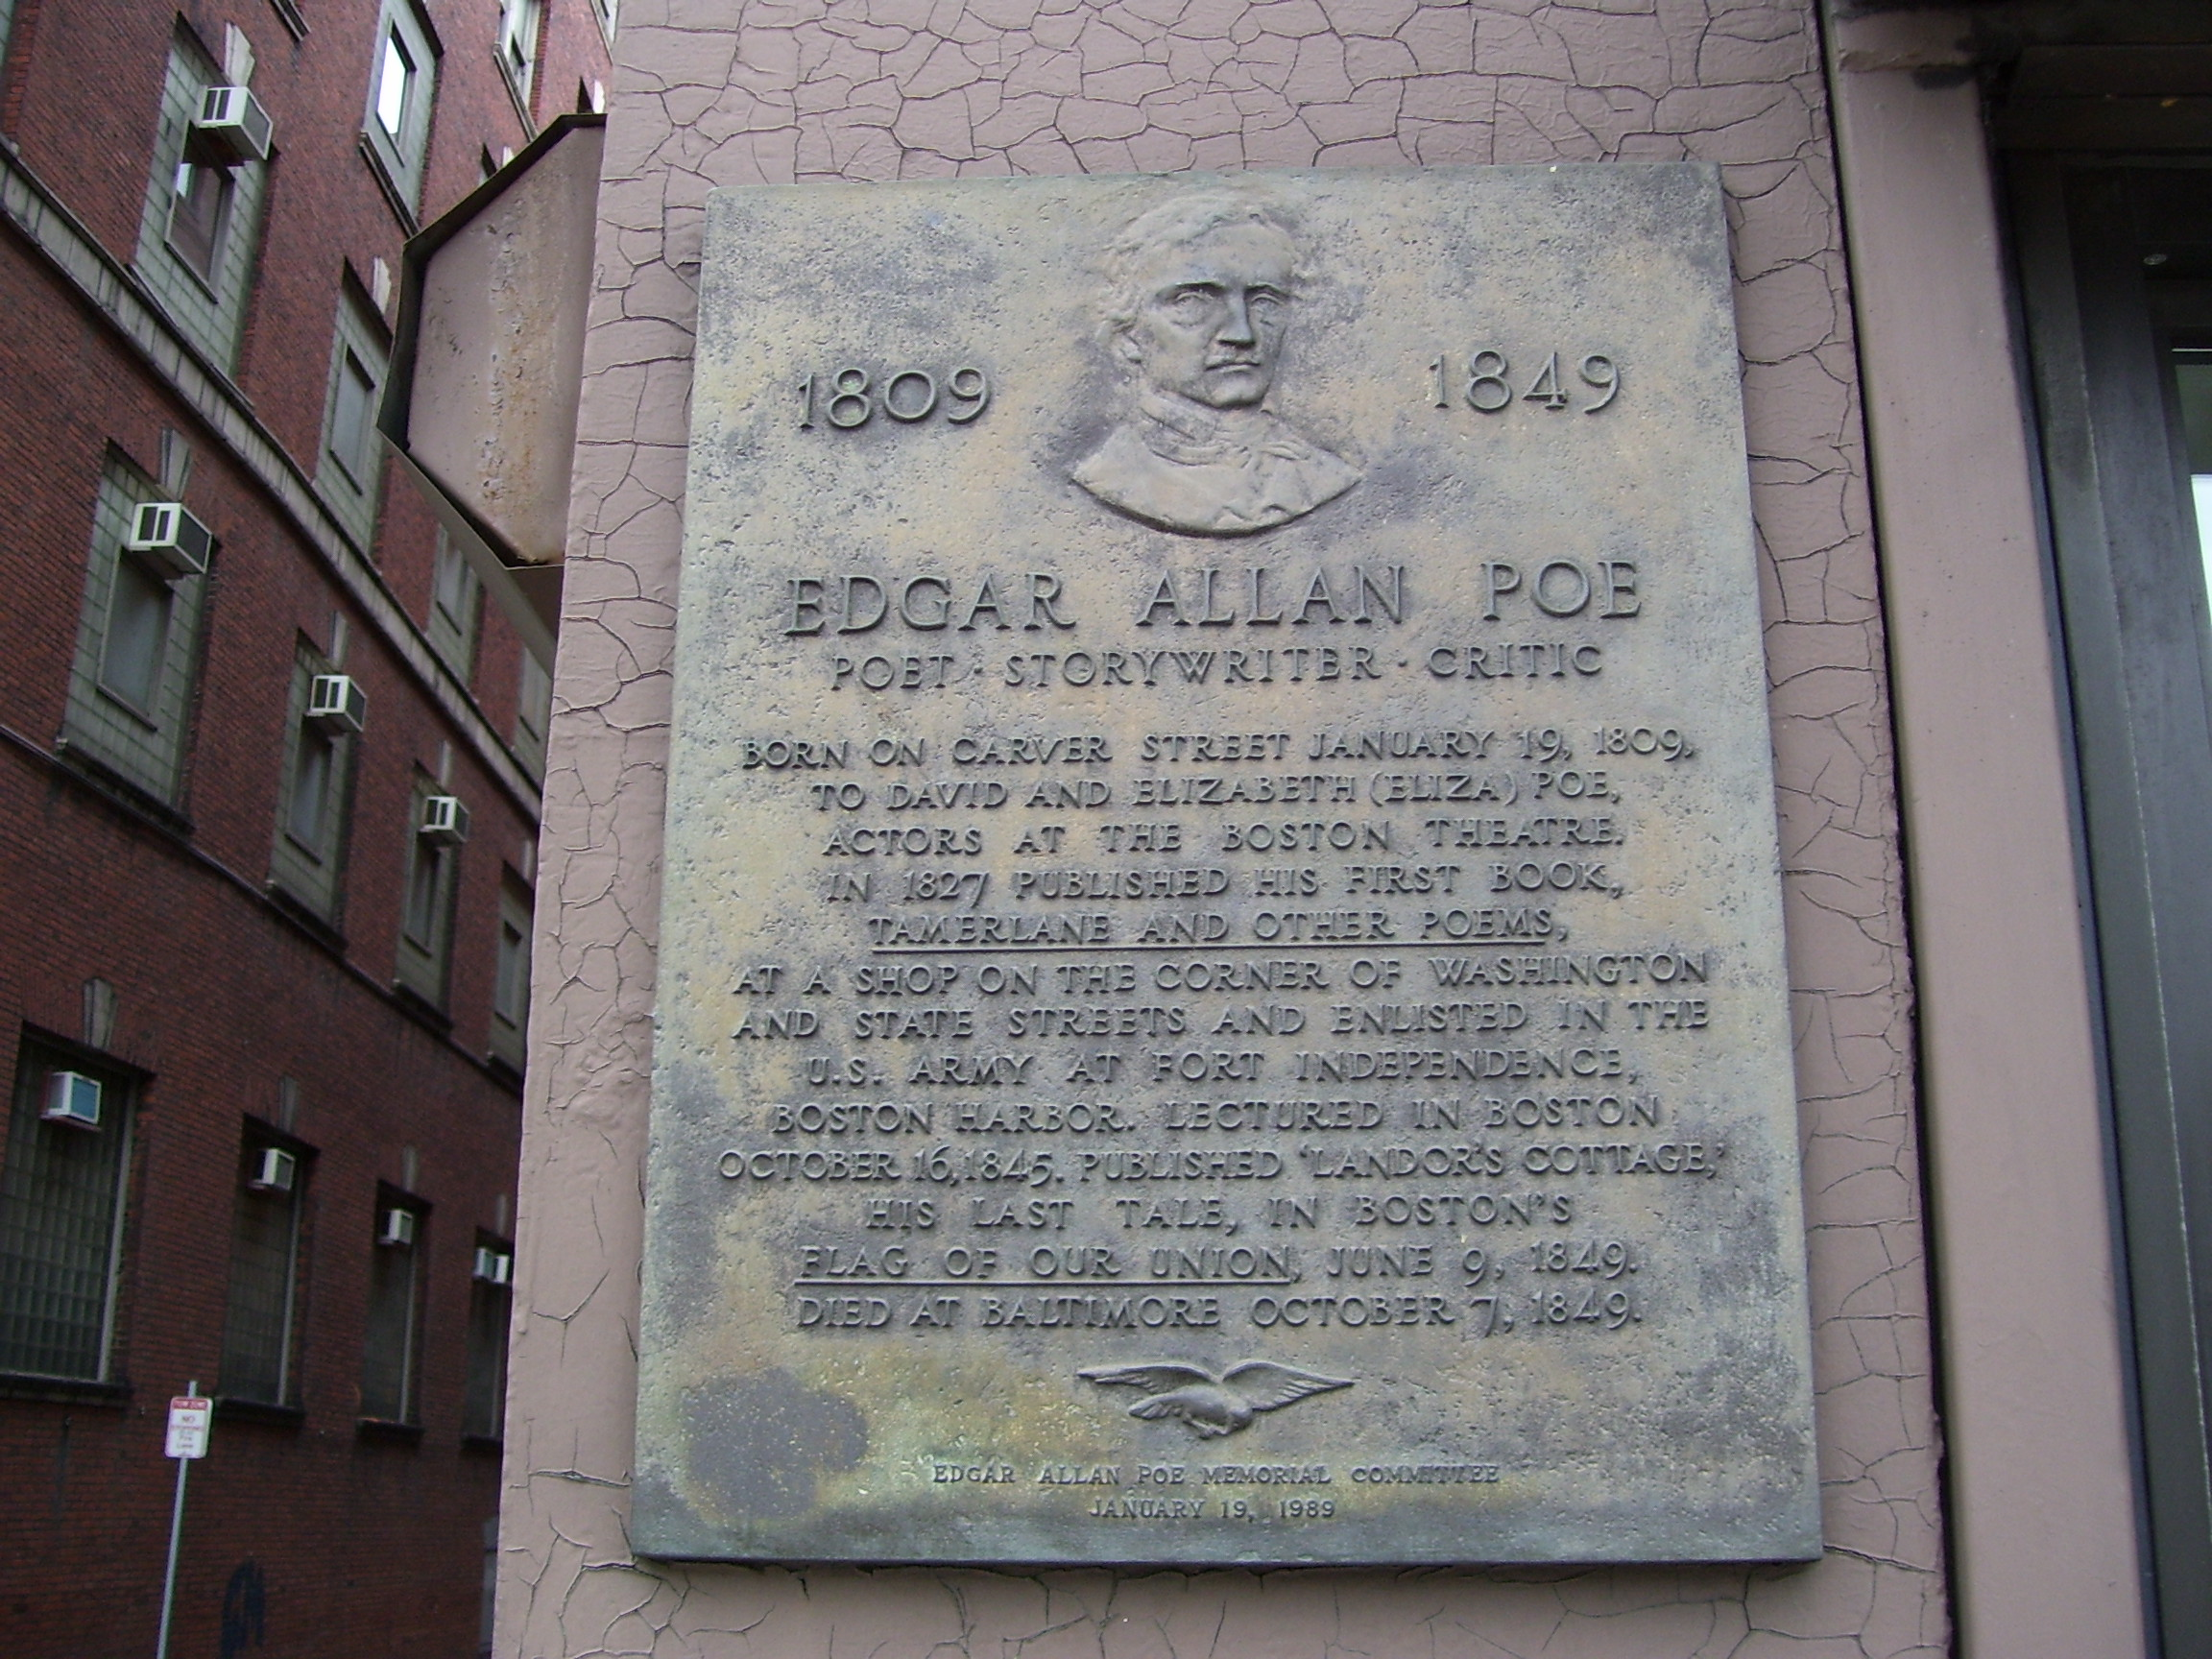 This plaque in Boston marks the approximate location where Edgar Allan Poe was born. Photo taken by <a href=